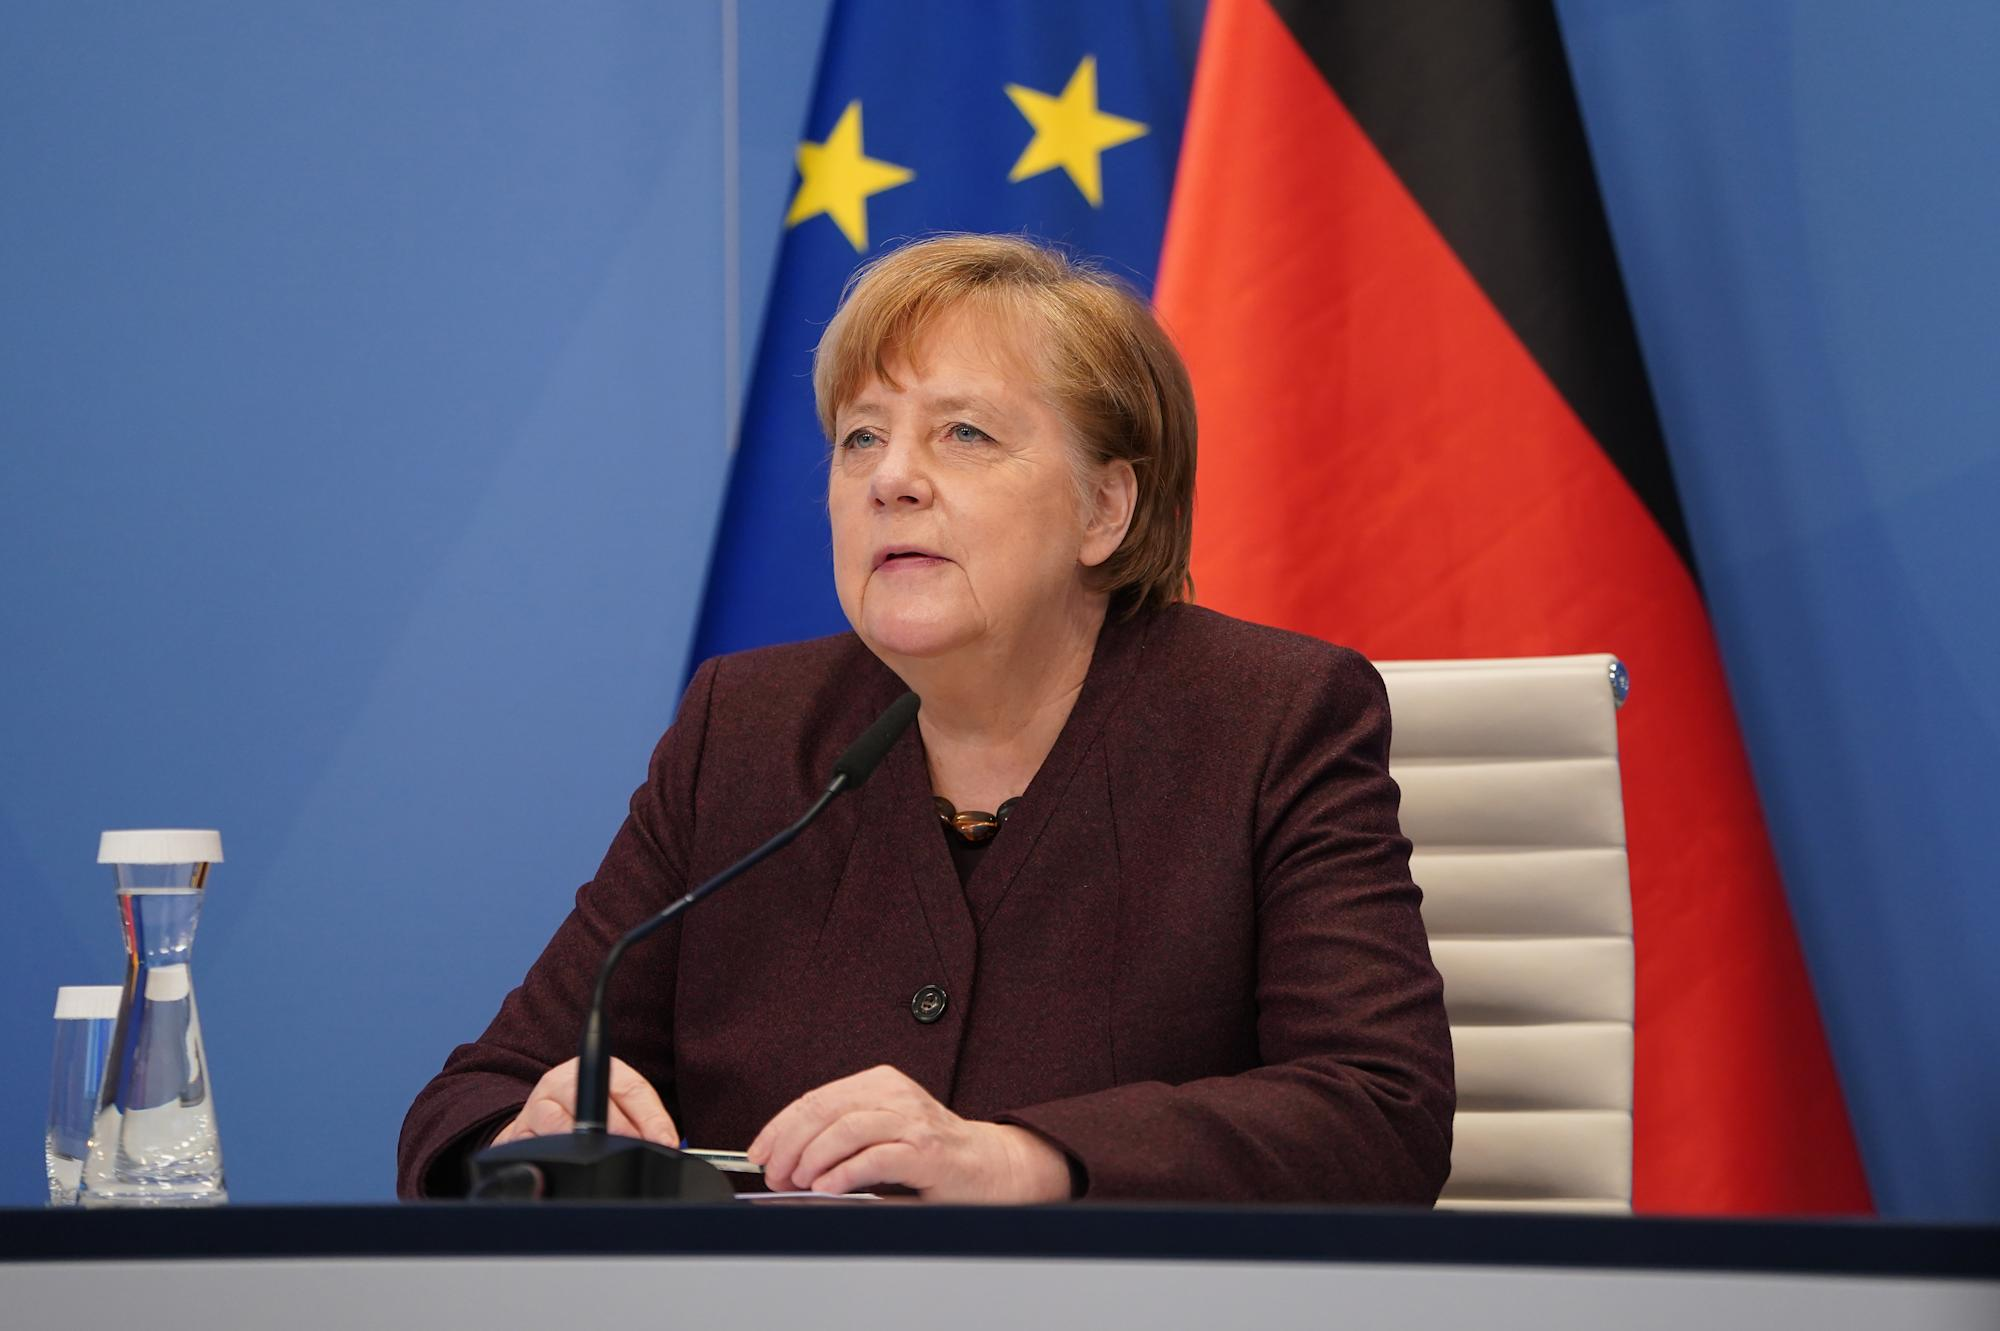 DAVOS 2021: Merkel criticises China's COVID 'transparency'